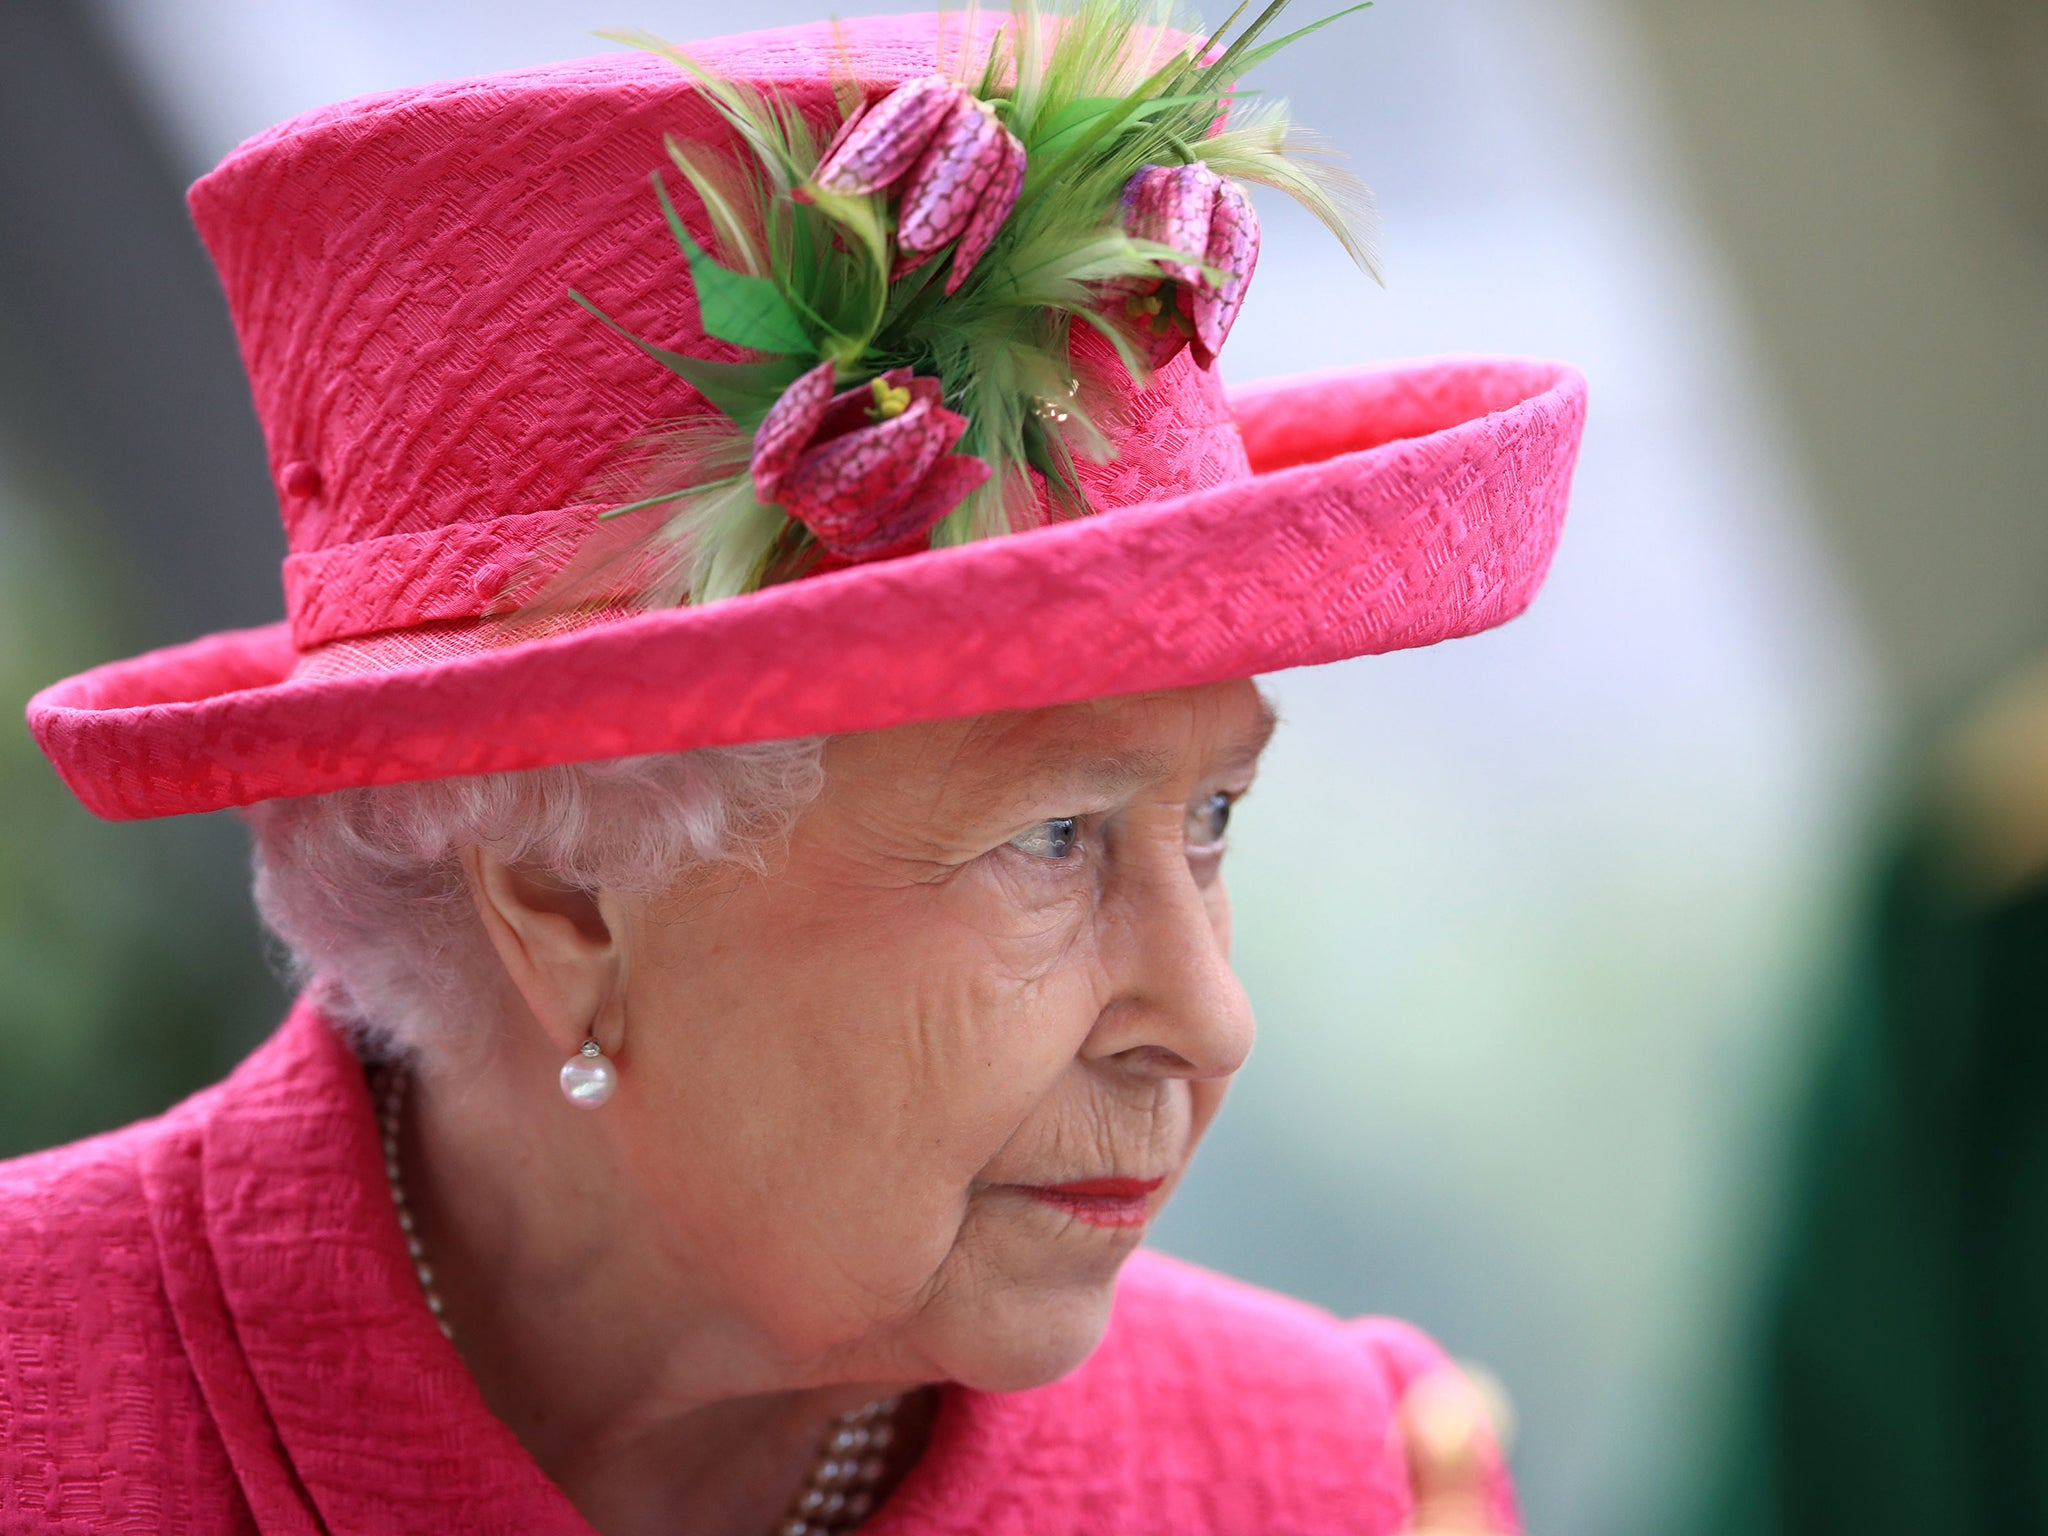 The death of Queen Elizabeth will be the most disruptive event in Britain in the last 70 years